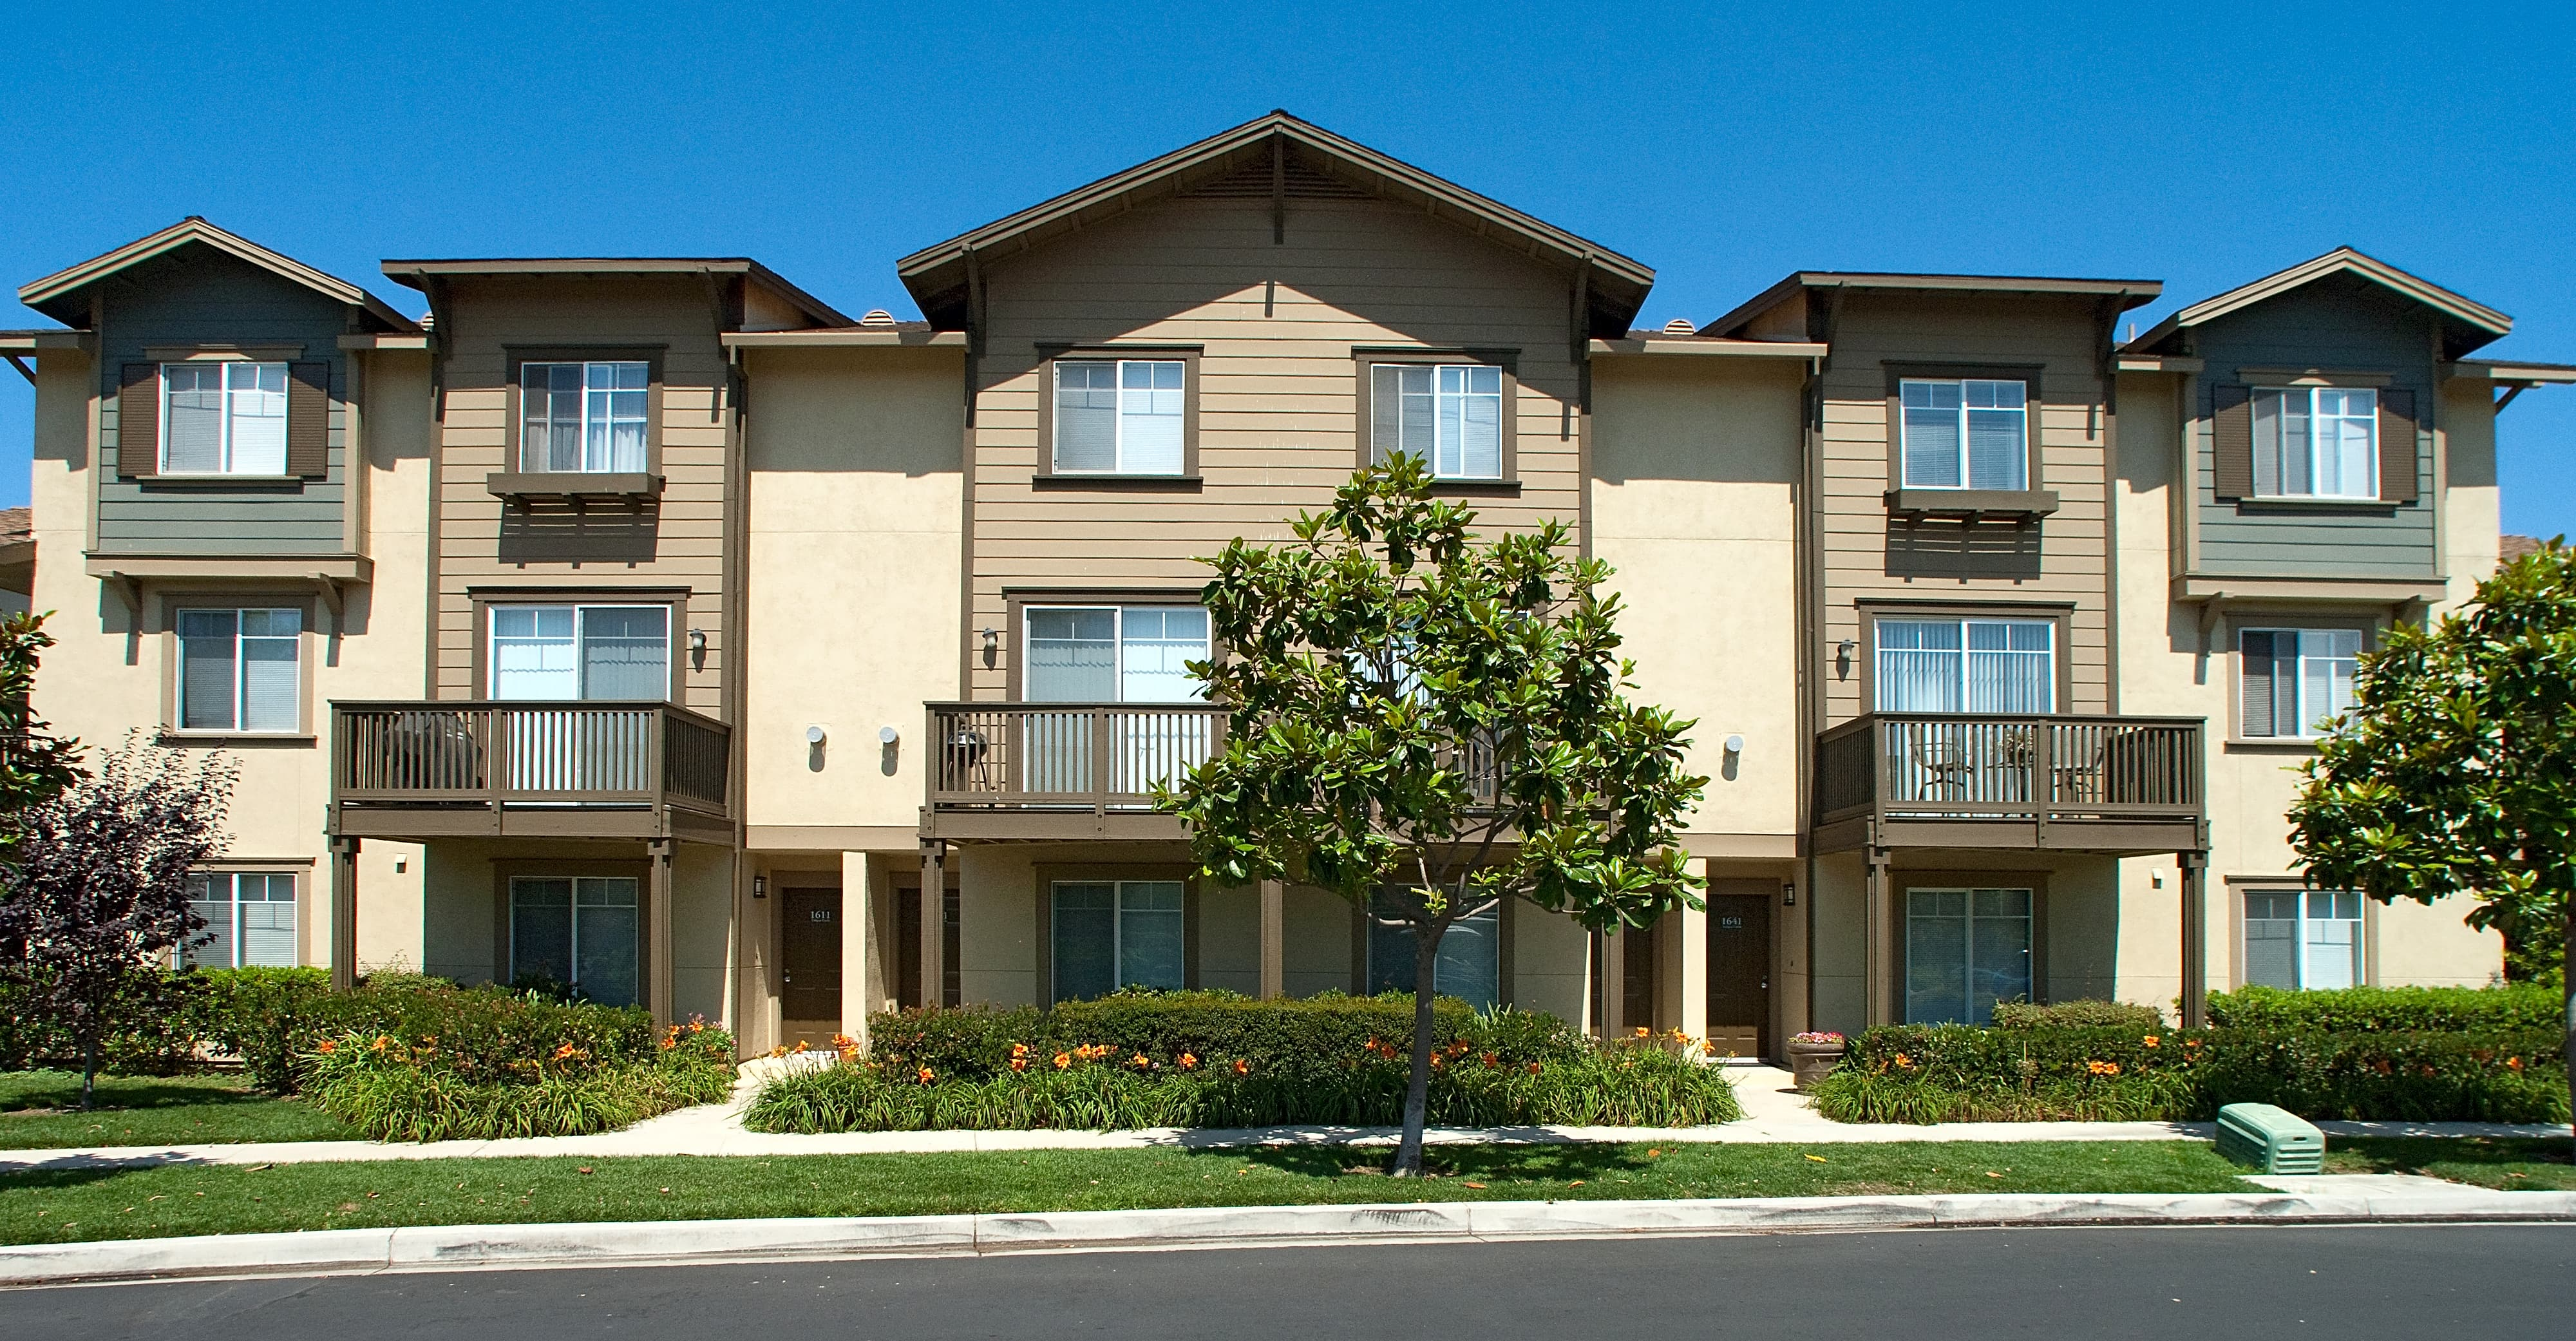 Photo: Oxnard Apartment for Rent - $2309.00 / month; 3 Bd & 2 Ba